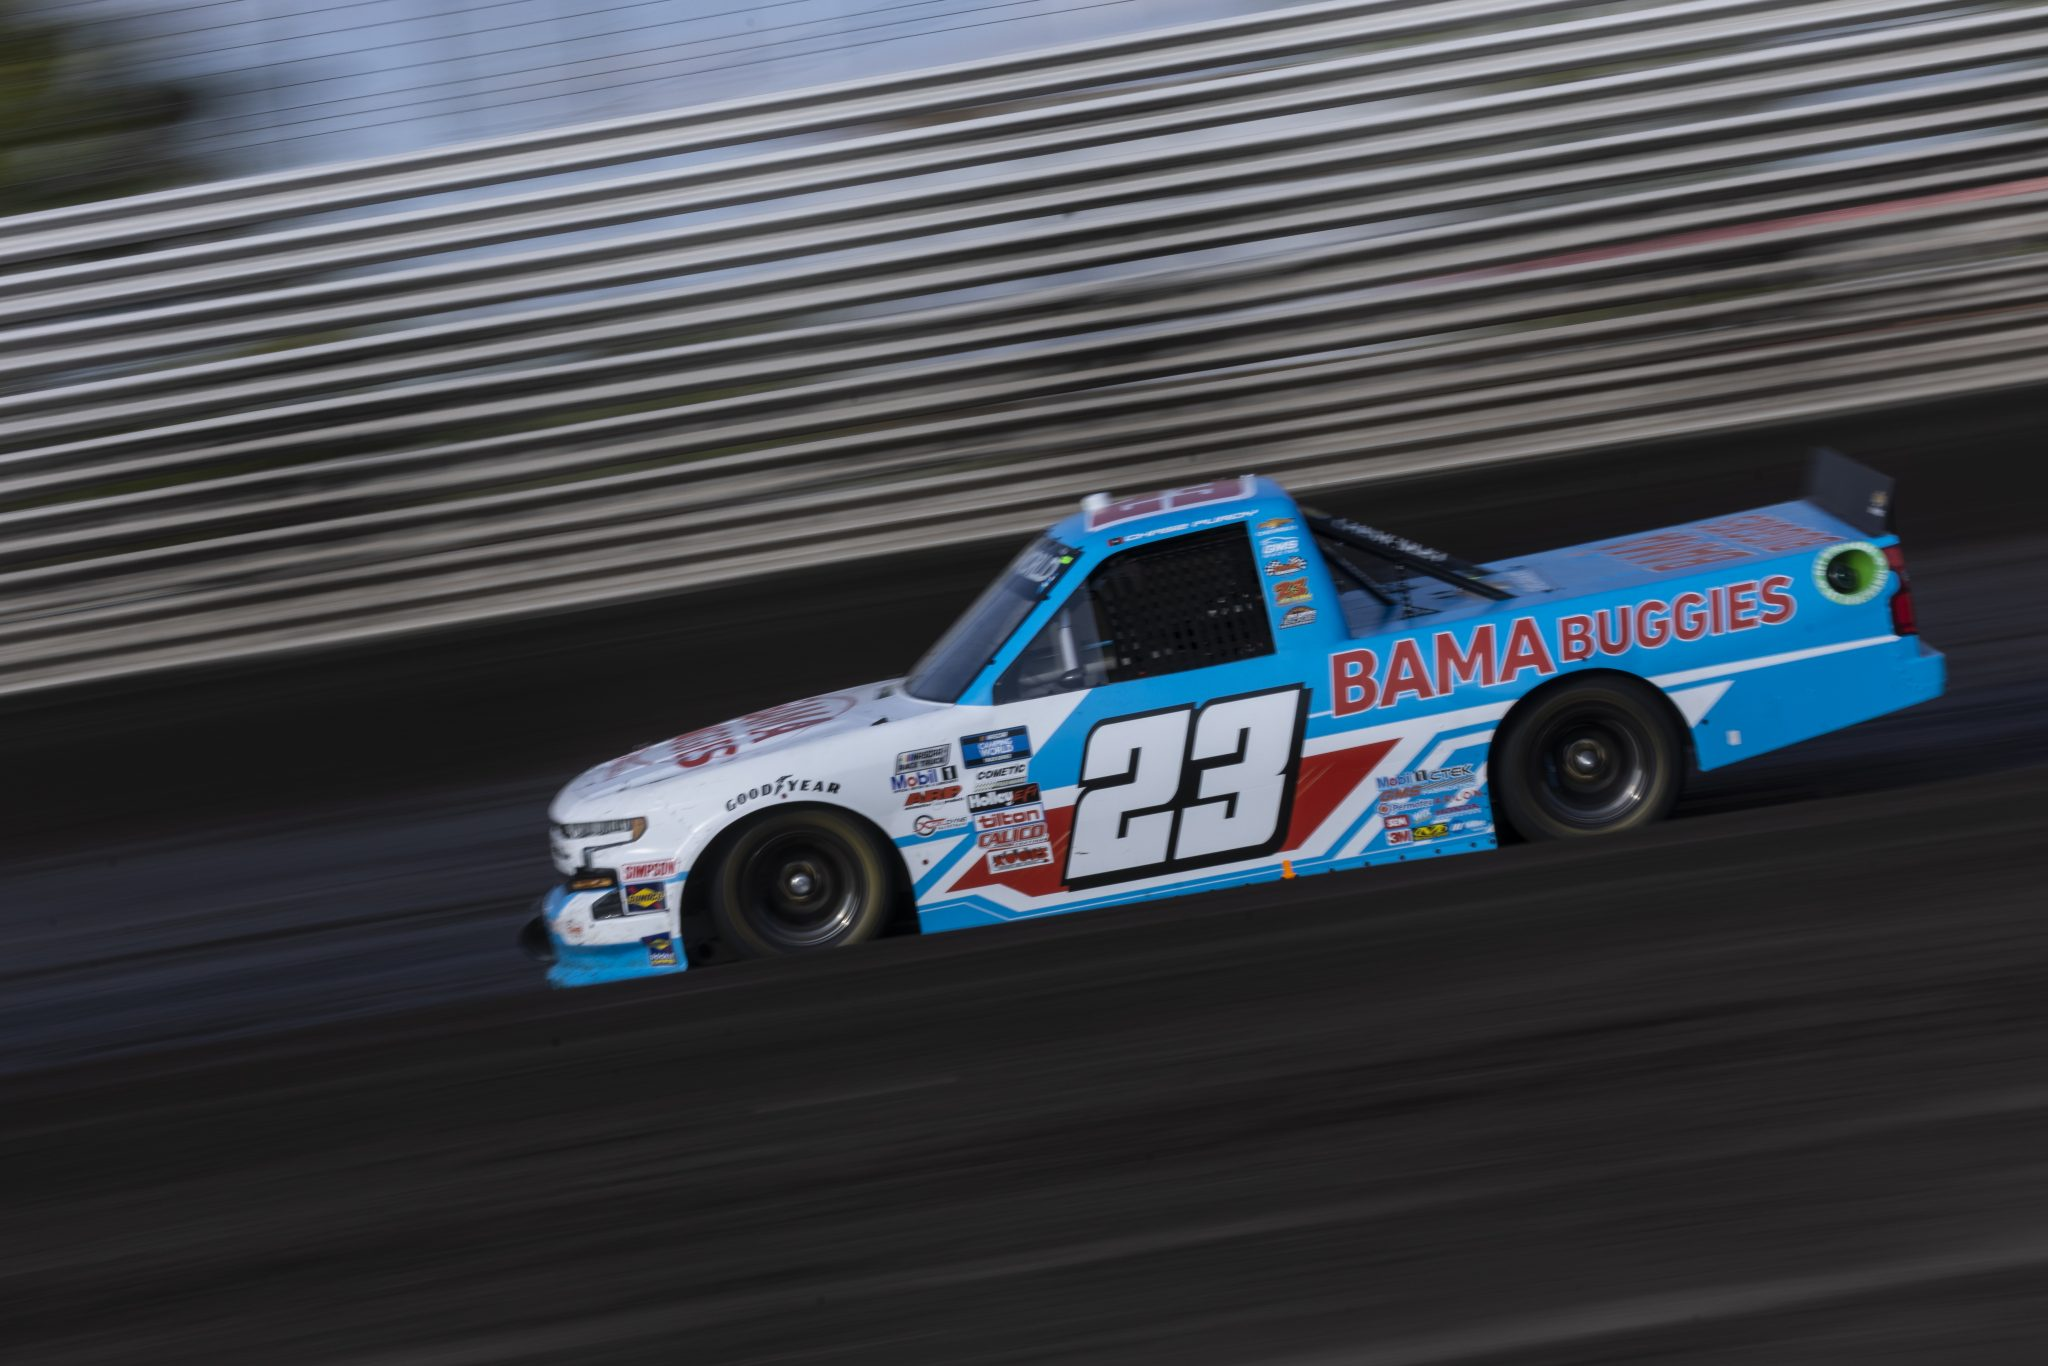 KNOXVILLE, IOWA - JULY 08: Chase Purdy, driver of the #23 BamaBuggies.com Chevrolet, drives during practice for the NASCAR Camping World Truck Series Corn Belt 150 presented by Premier Chevy Dealers at Knoxville Raceway on July 08, 2021 in Knoxville, Iowa. (Photo by James Gilbert/Getty Images) | Getty Images